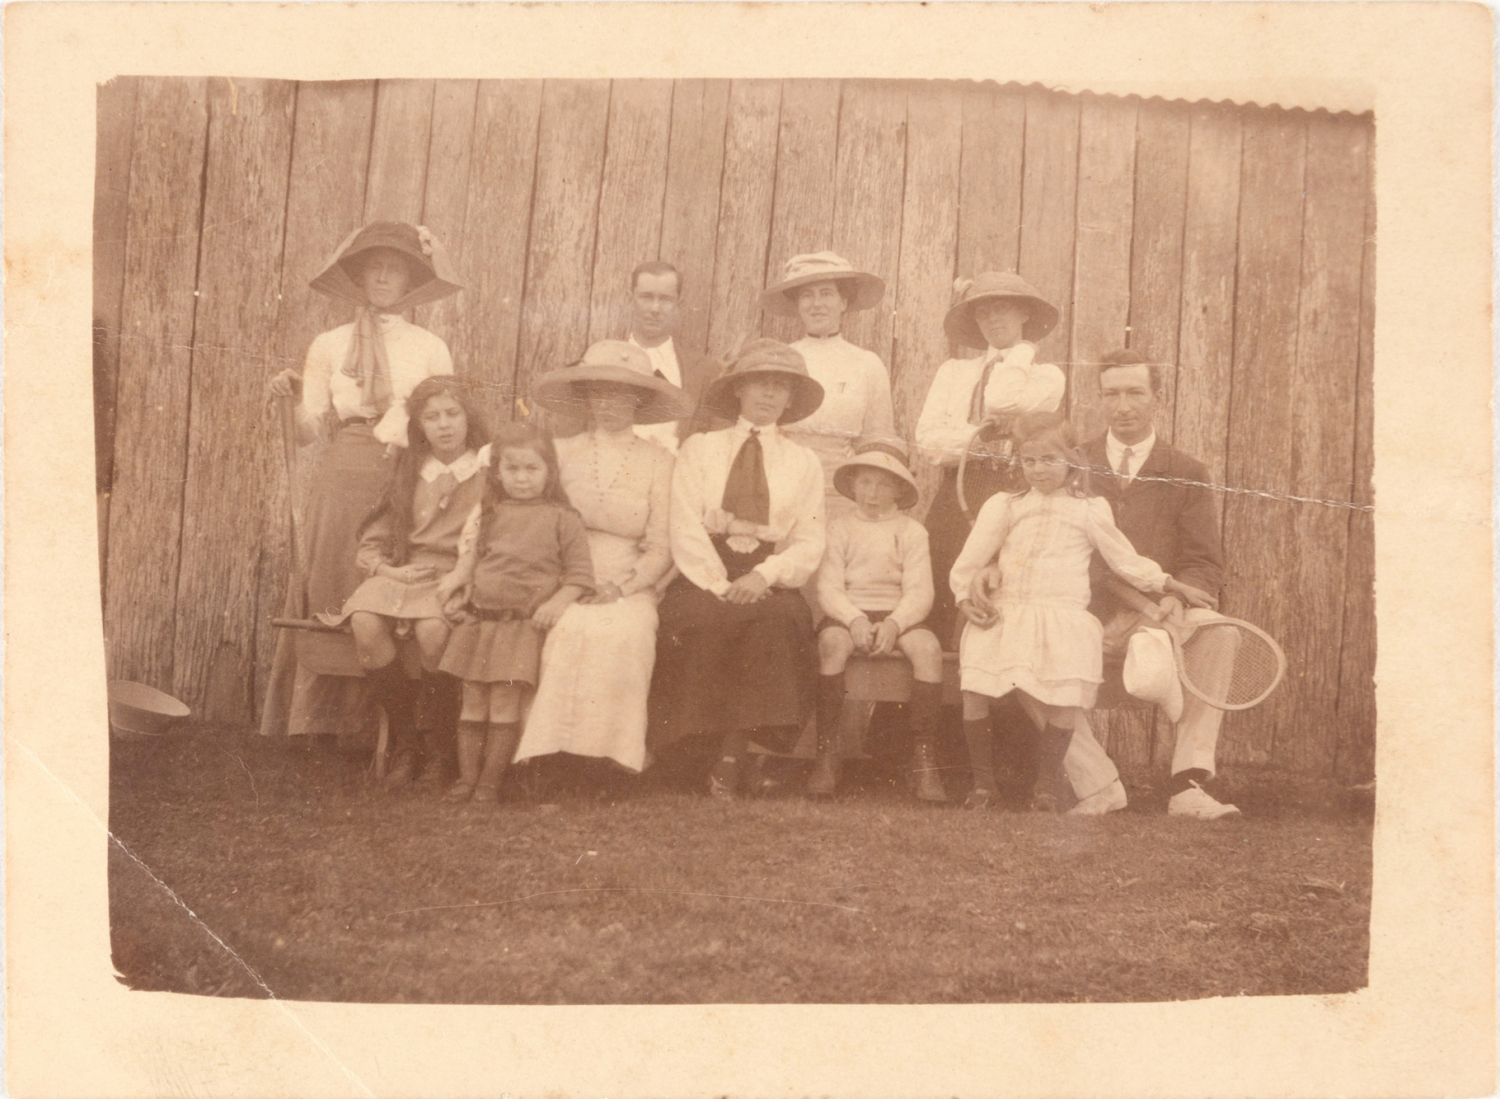 Sepia toned photo of eight people standing and seated in from of wooden building.